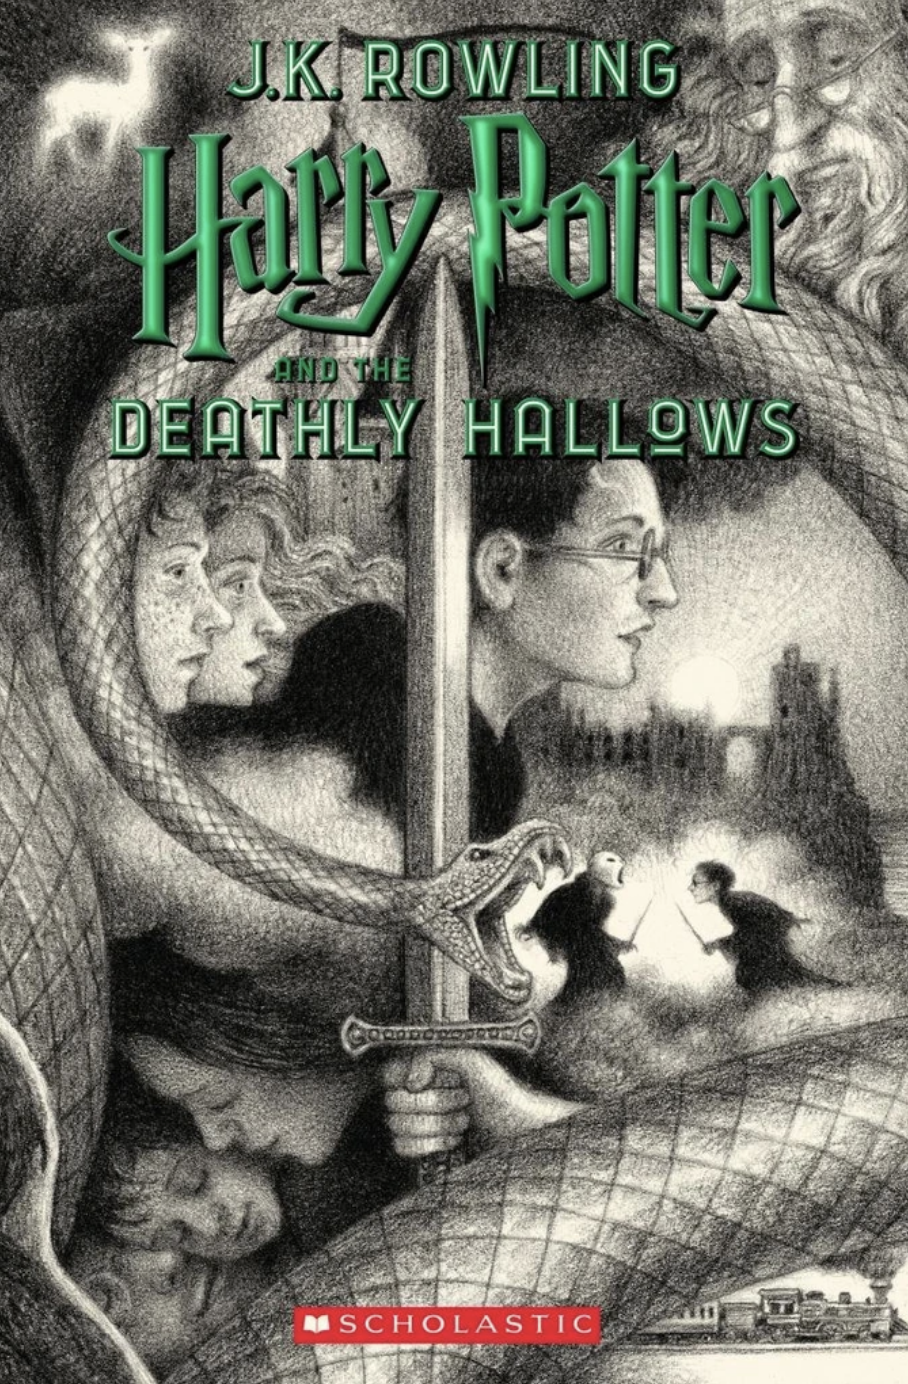 Harry Potter and the Deathly Hallows — J.K. Rowling